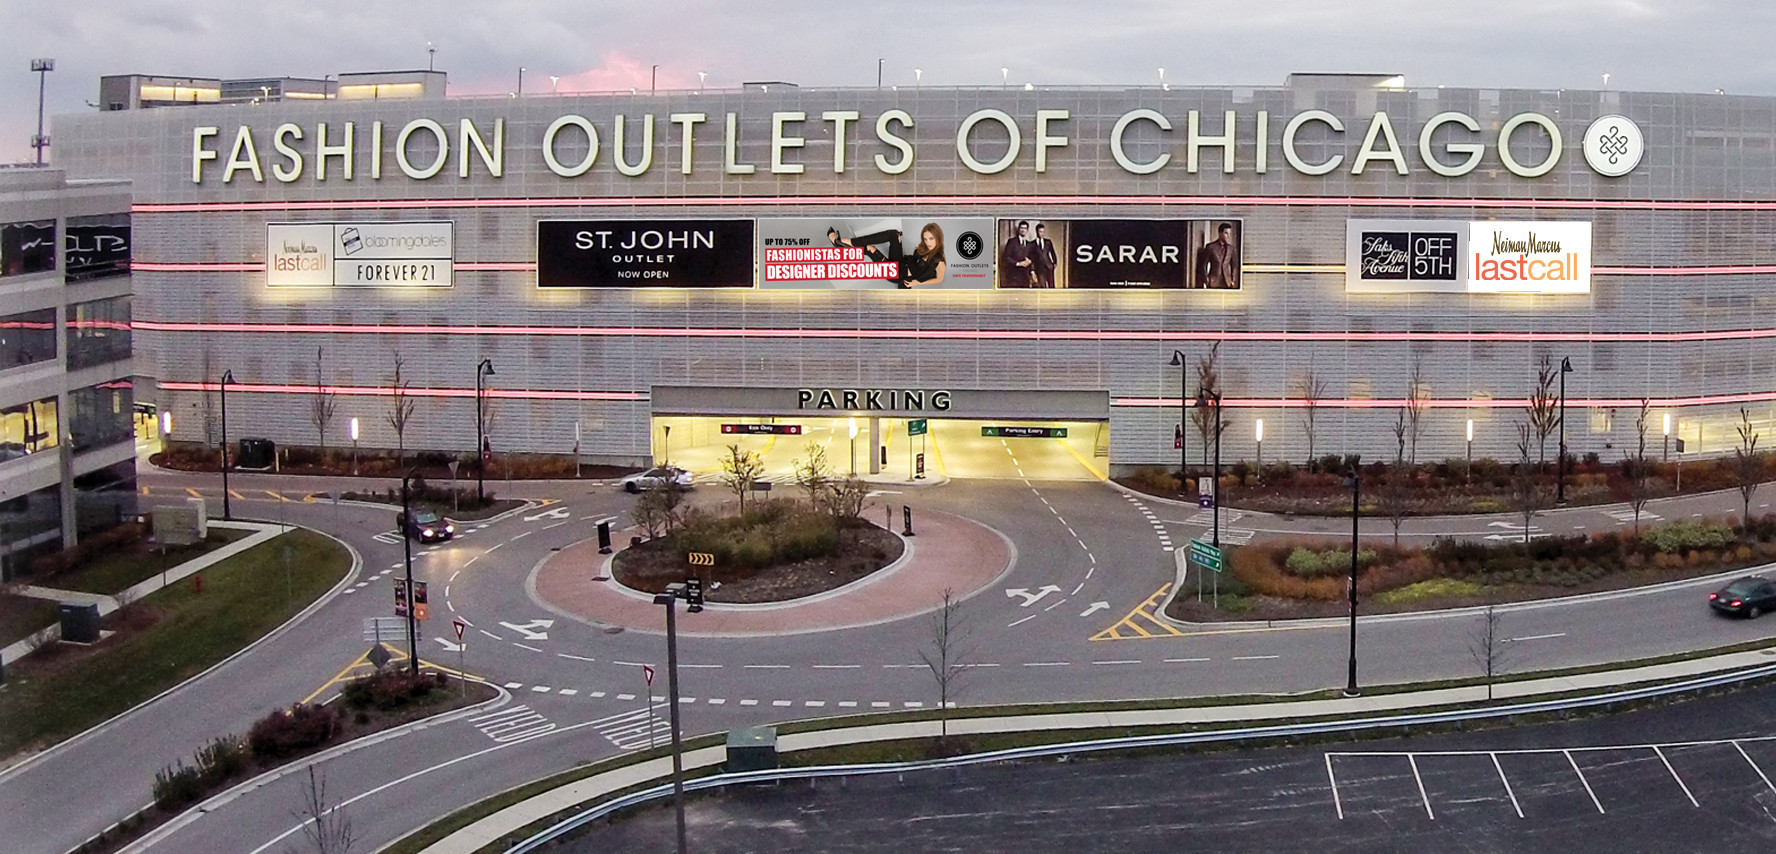 Fashion outlet of chicago stores 60